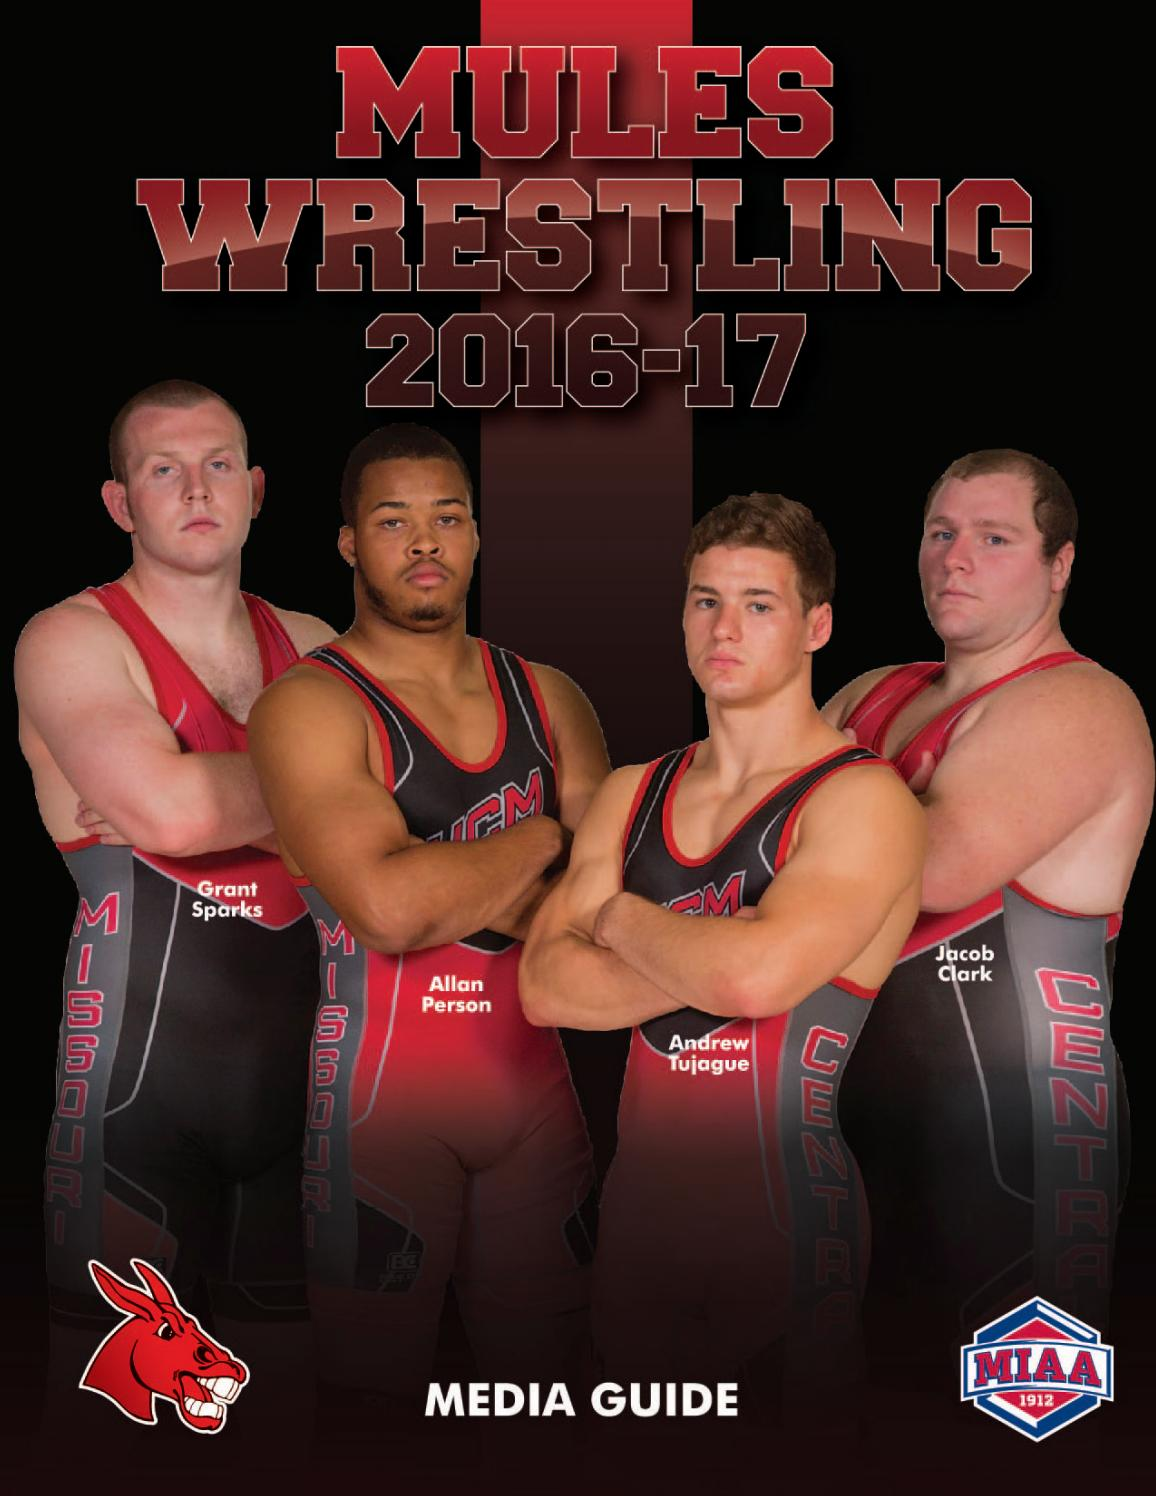 2016-17 Central Missouri Mules Wrestling Media Guide by UCM